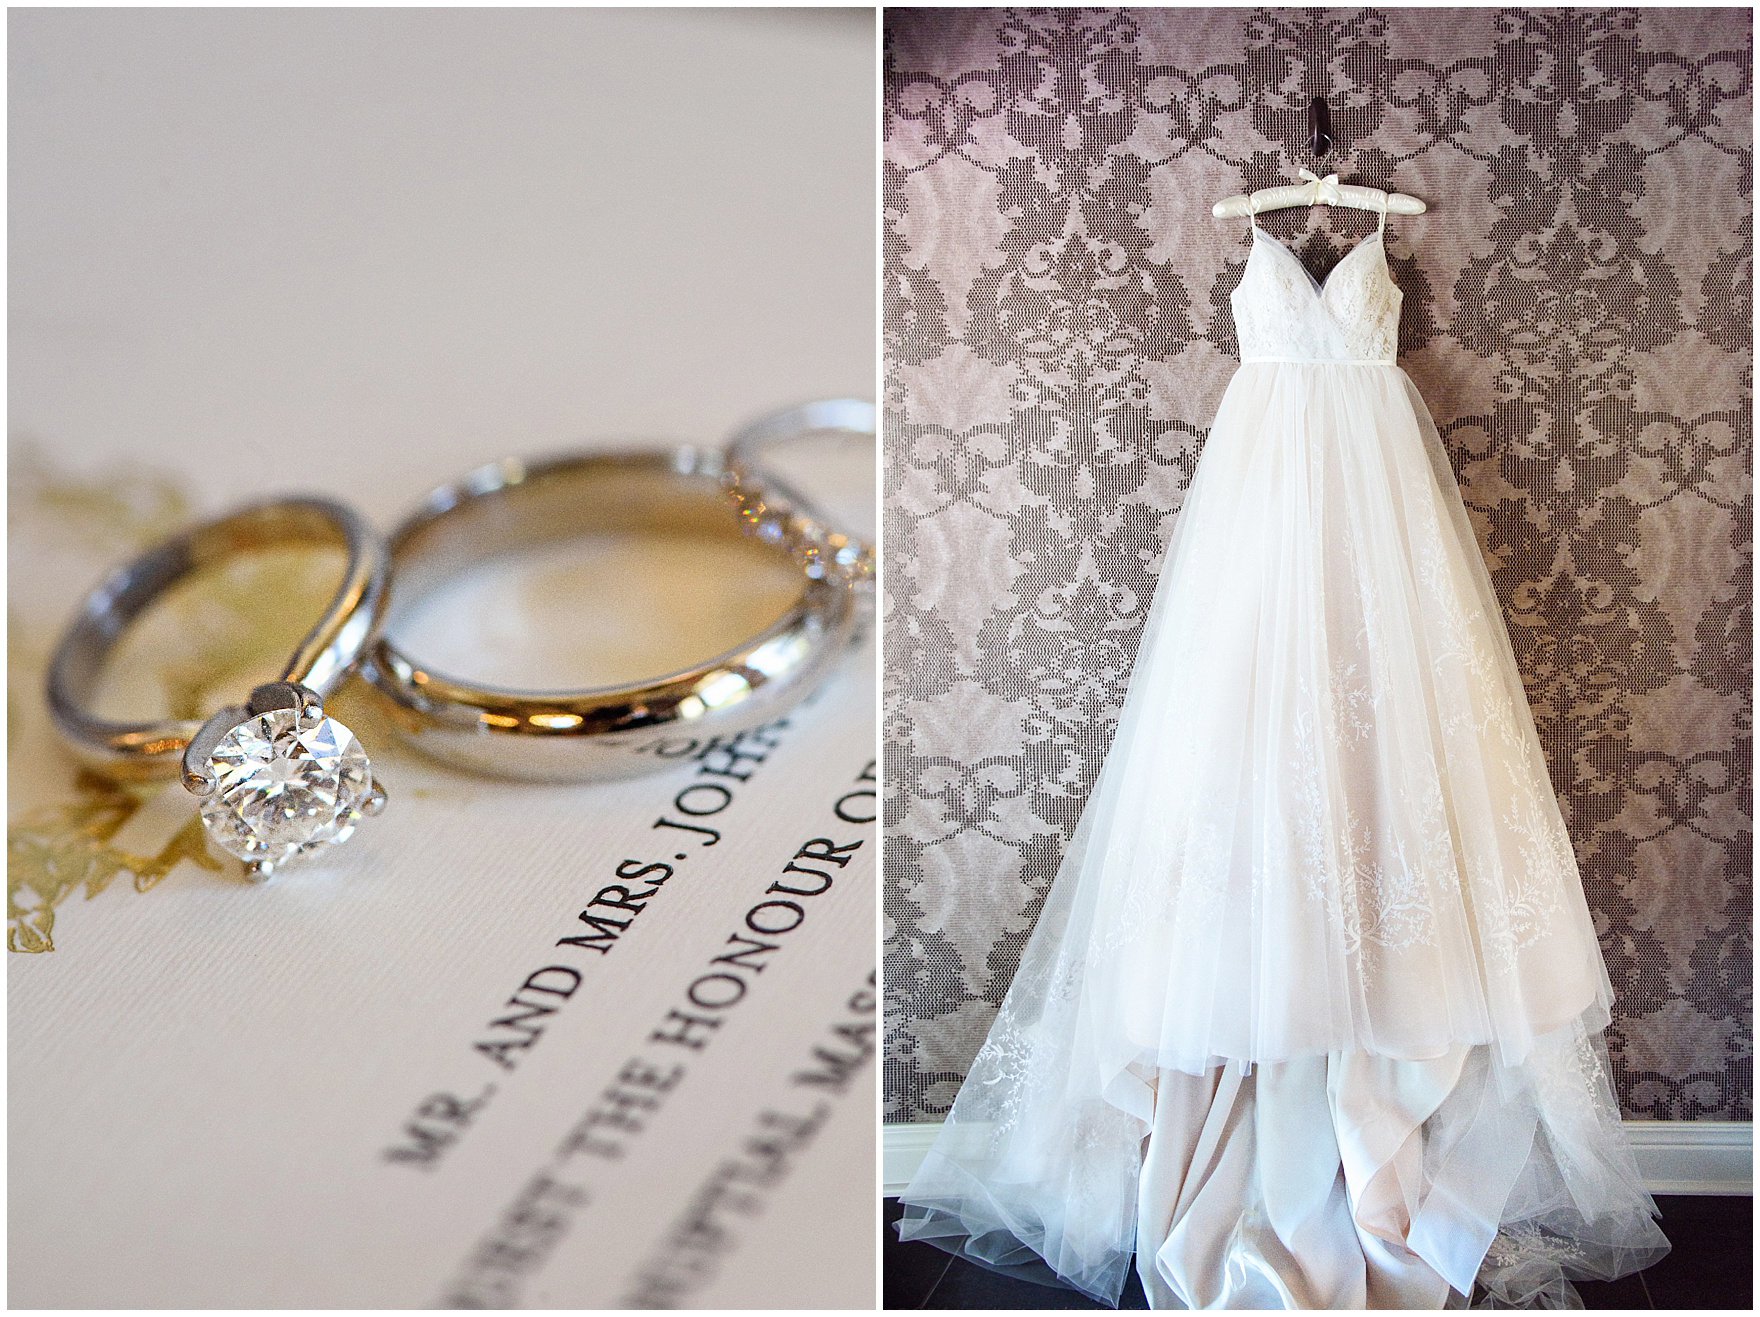 Detail shots of a diamond engagement ring and a lace covered wedding dress for a Butterfield Country Club wedding.